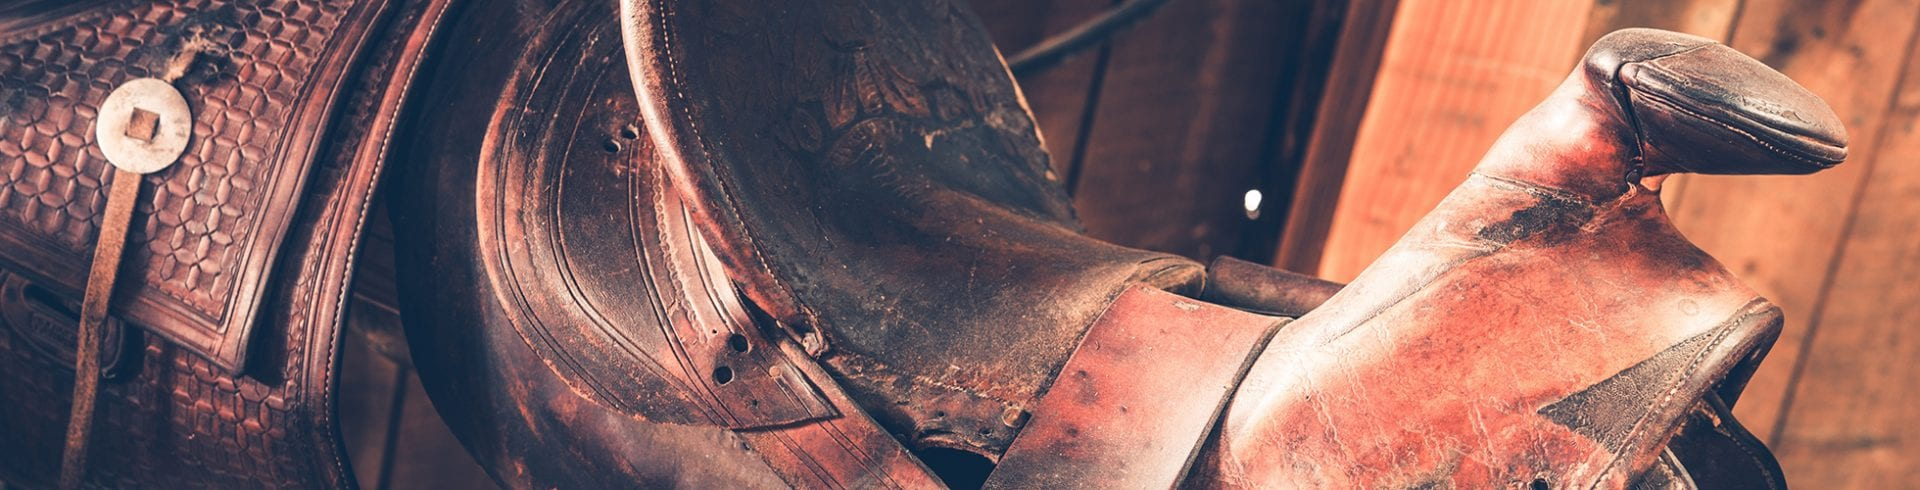 Remove Mold from Saddles and Tack | Blog | MoldOff®